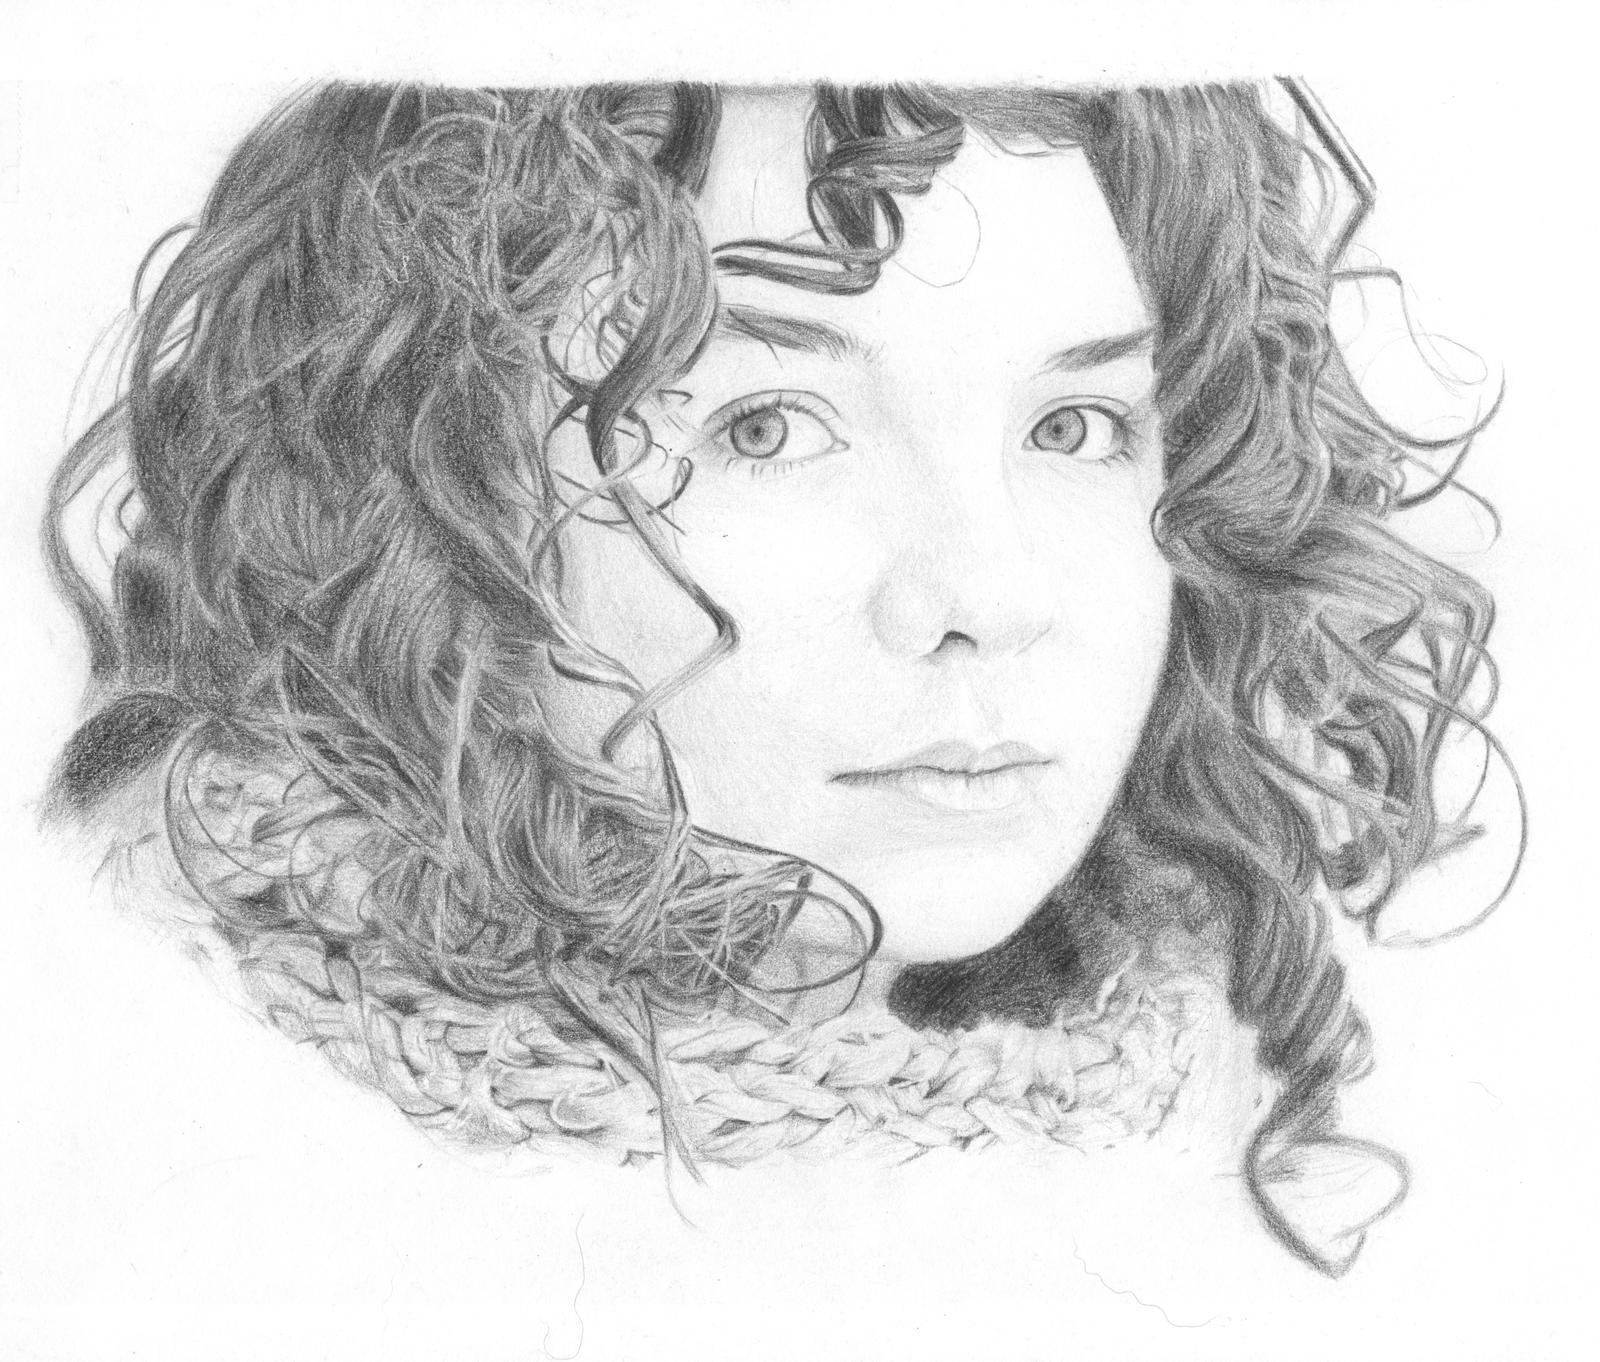 Drawing of a Little Girl With Curly Hair Curly Hair Girl by Keava Rayne